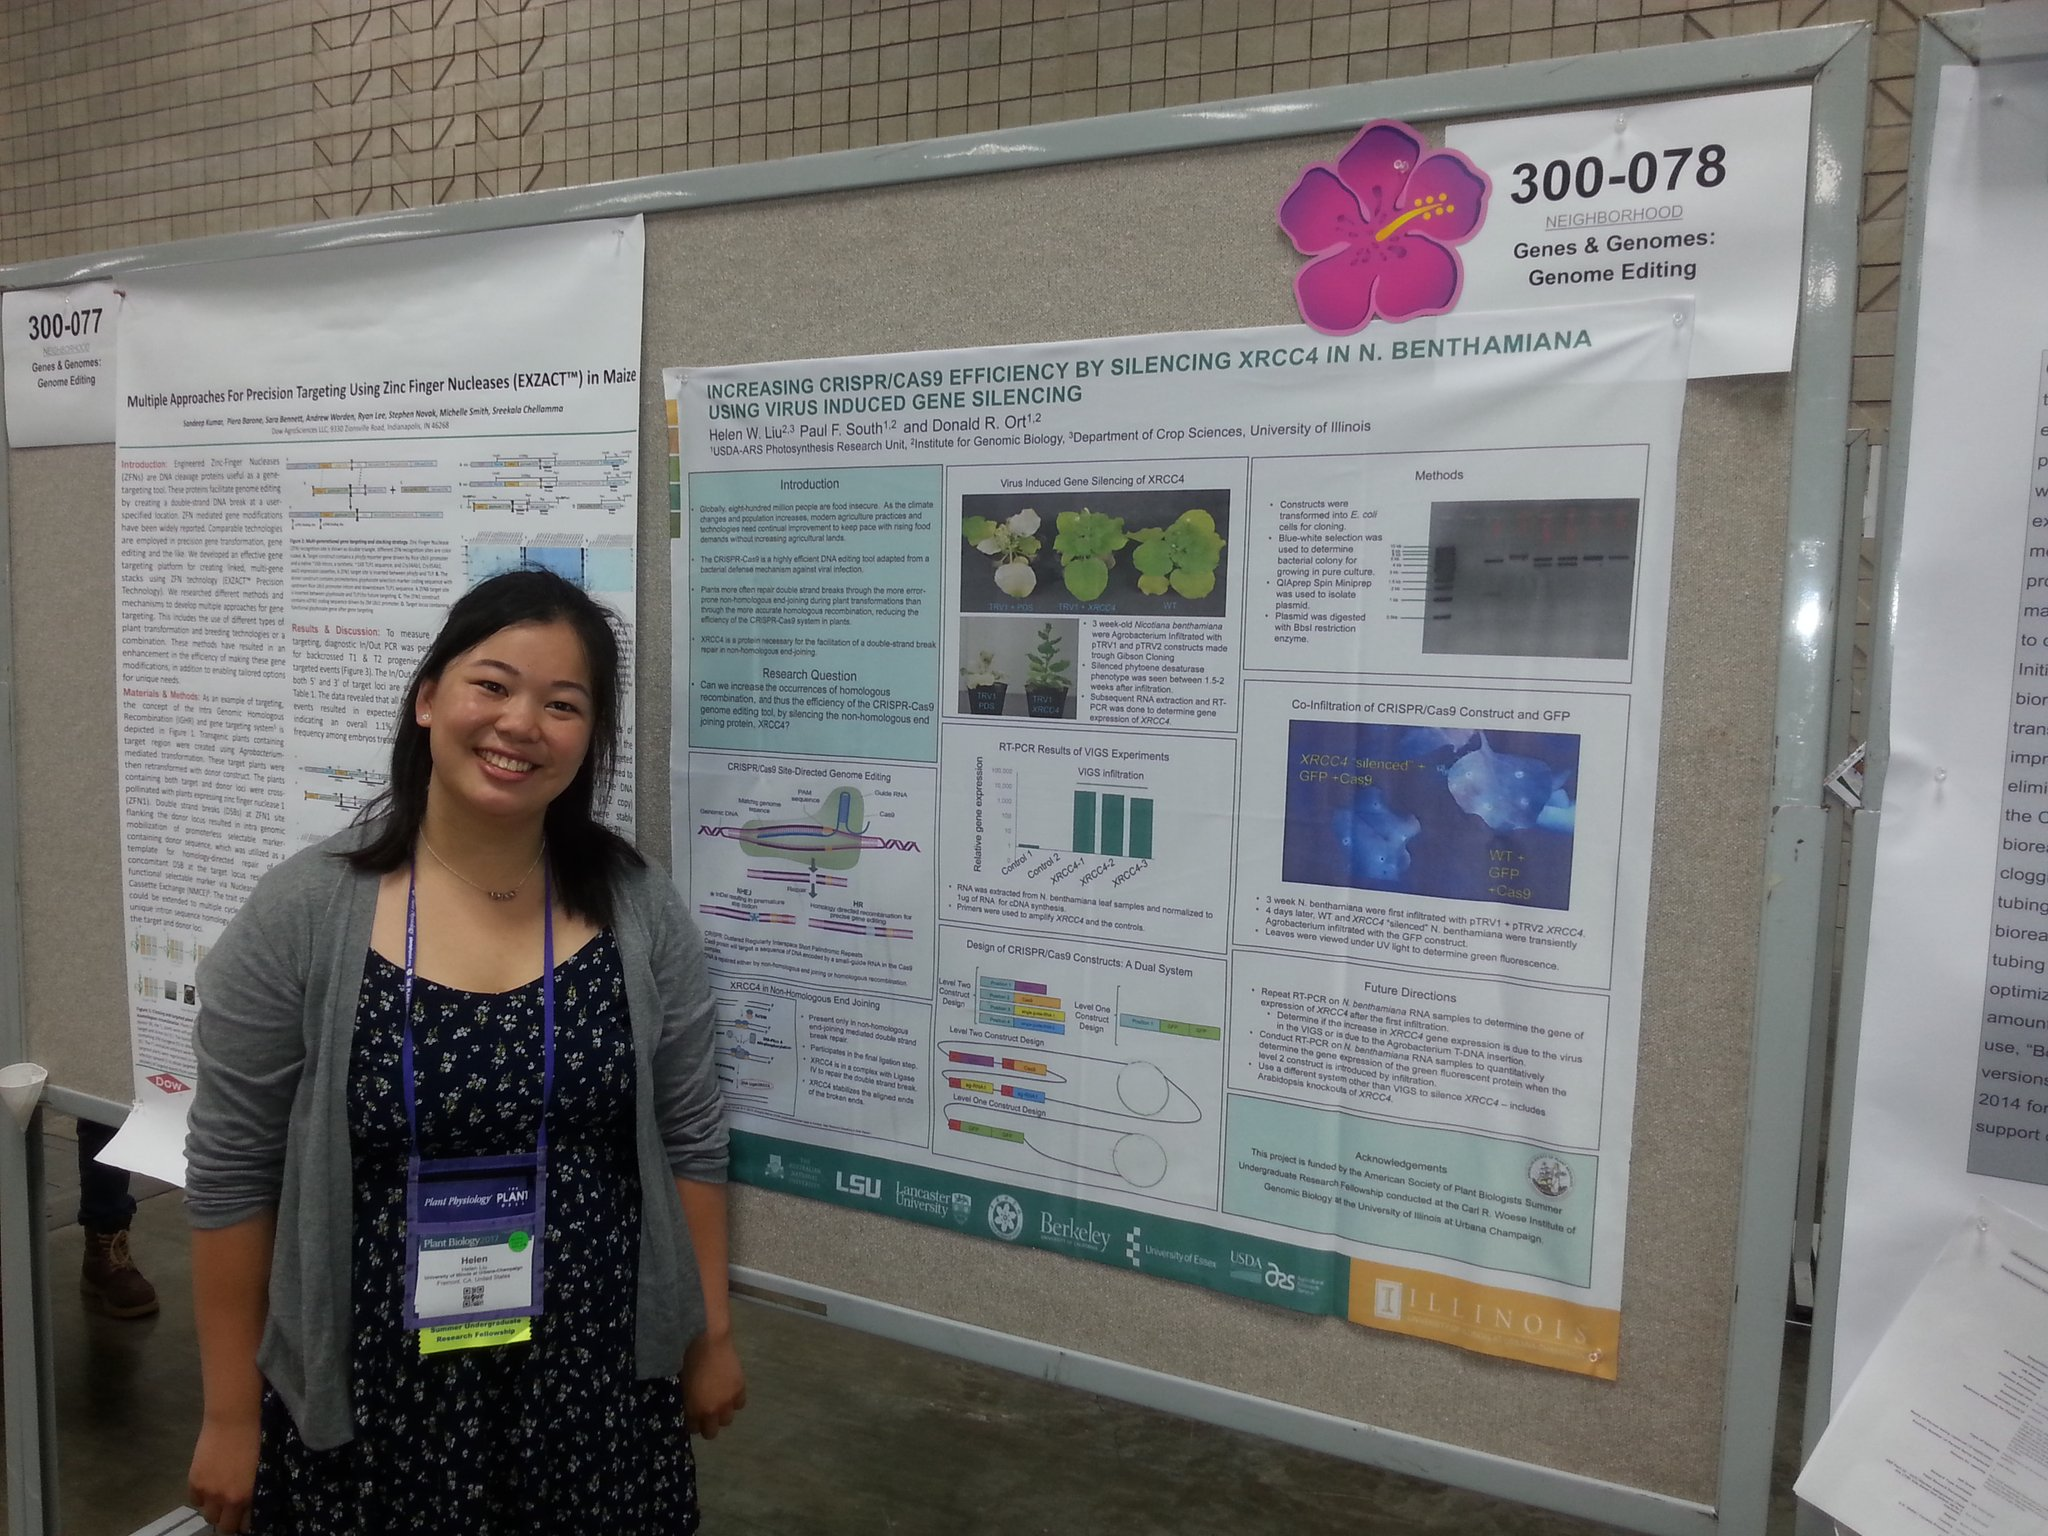 SURF undergrad poster session @melonhelen2 @RIPEresearch #plantbio17 https://t.co/7TDI2e1NS5